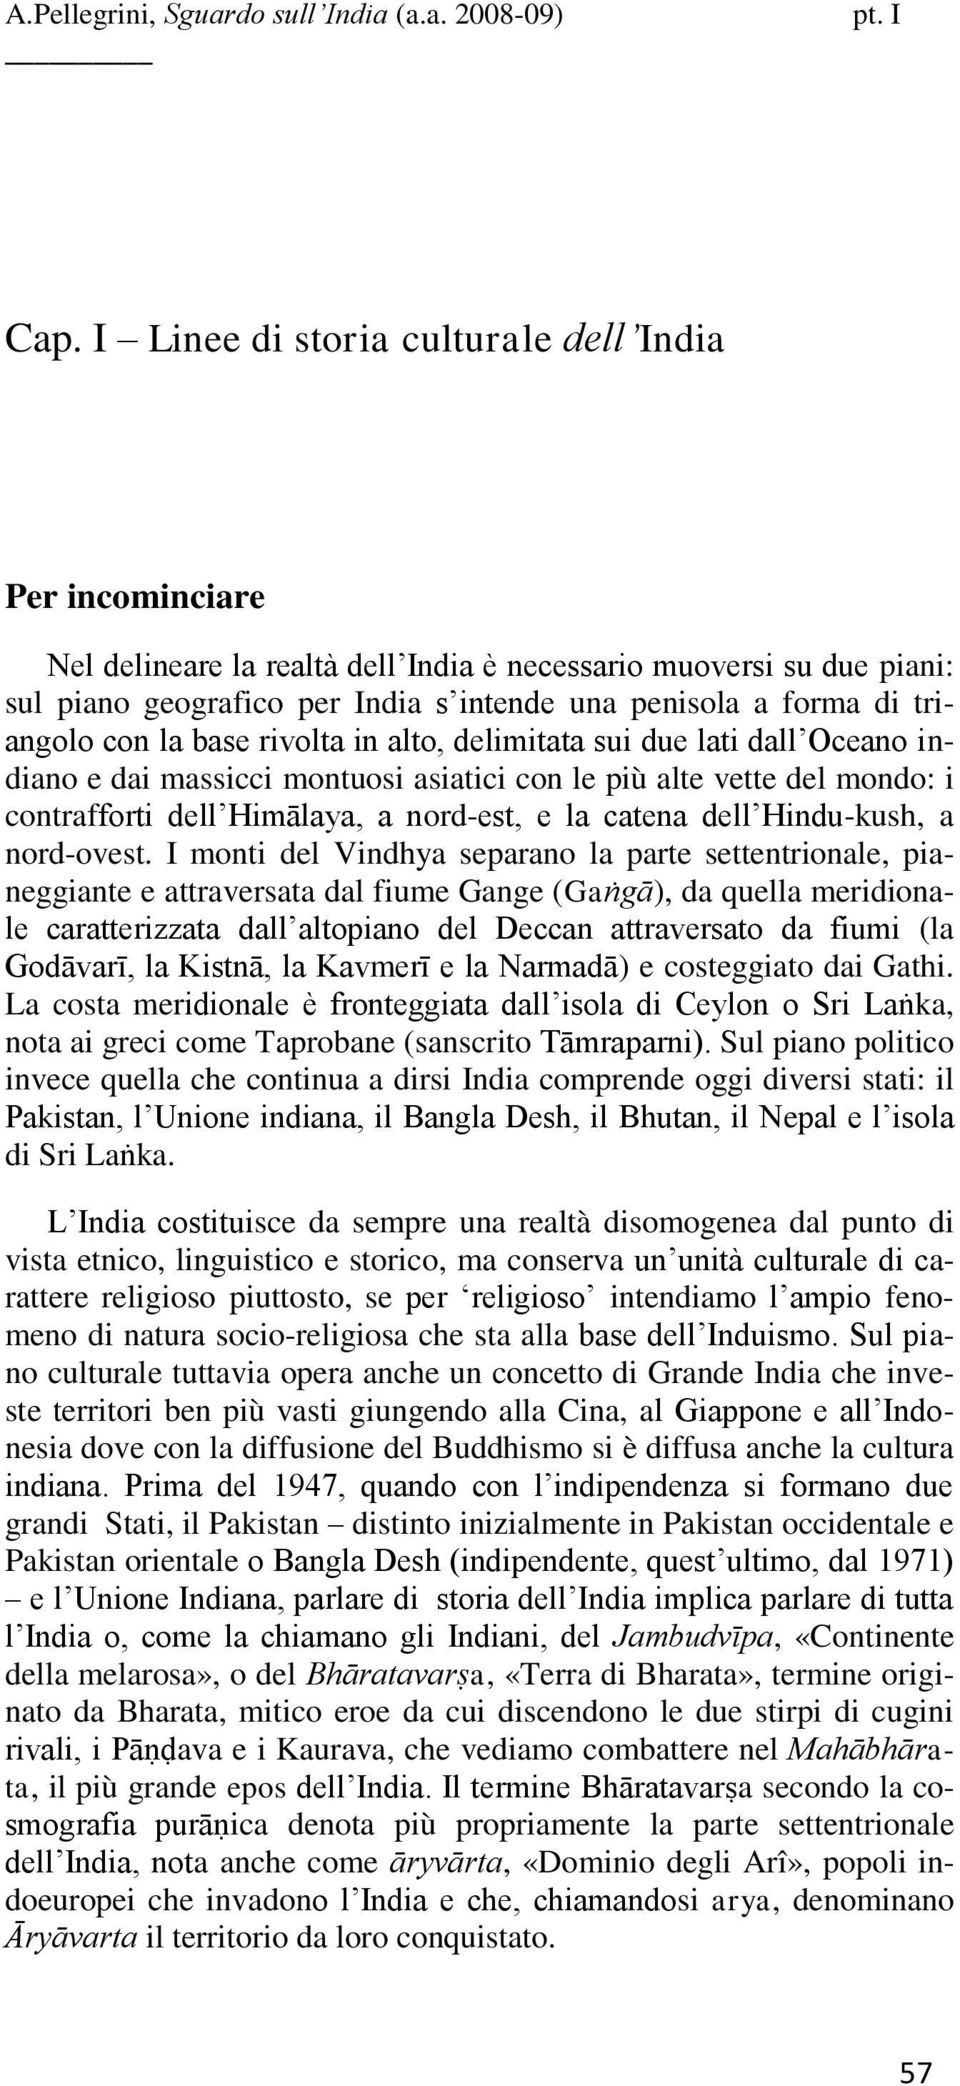 catena dell Hindu-kush, a nord-ovest.